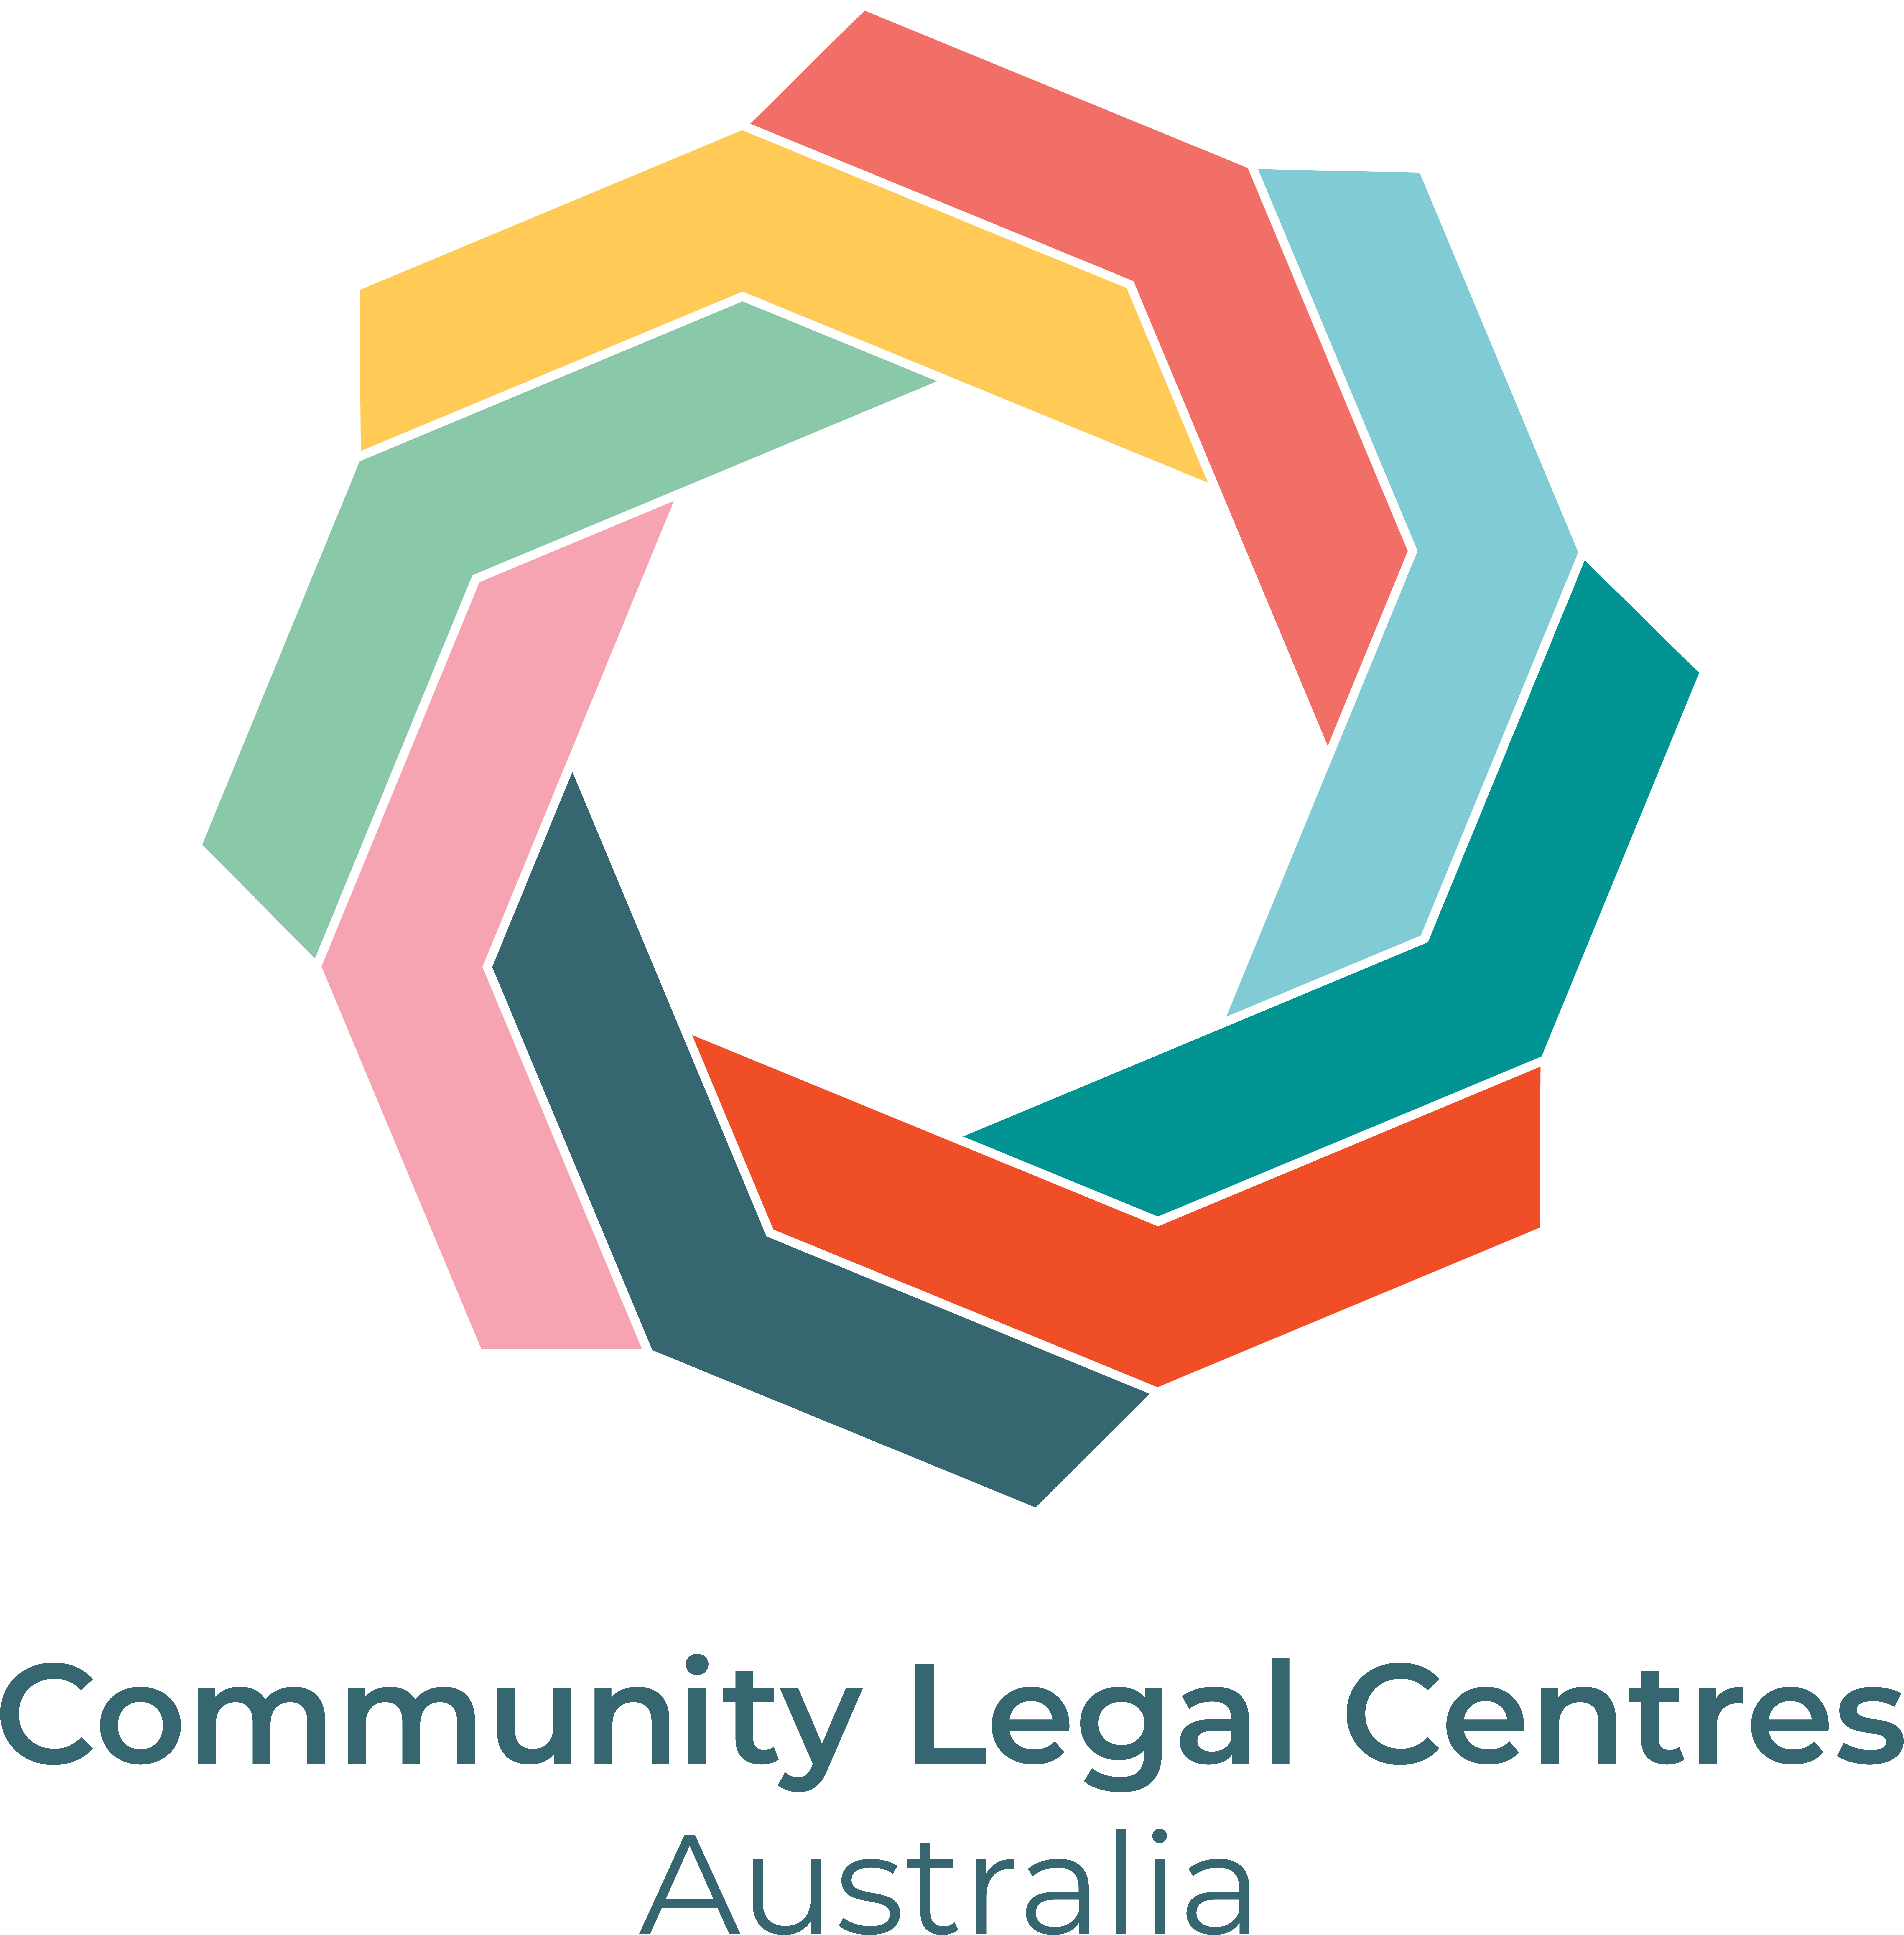 Community Legal Centres Australia